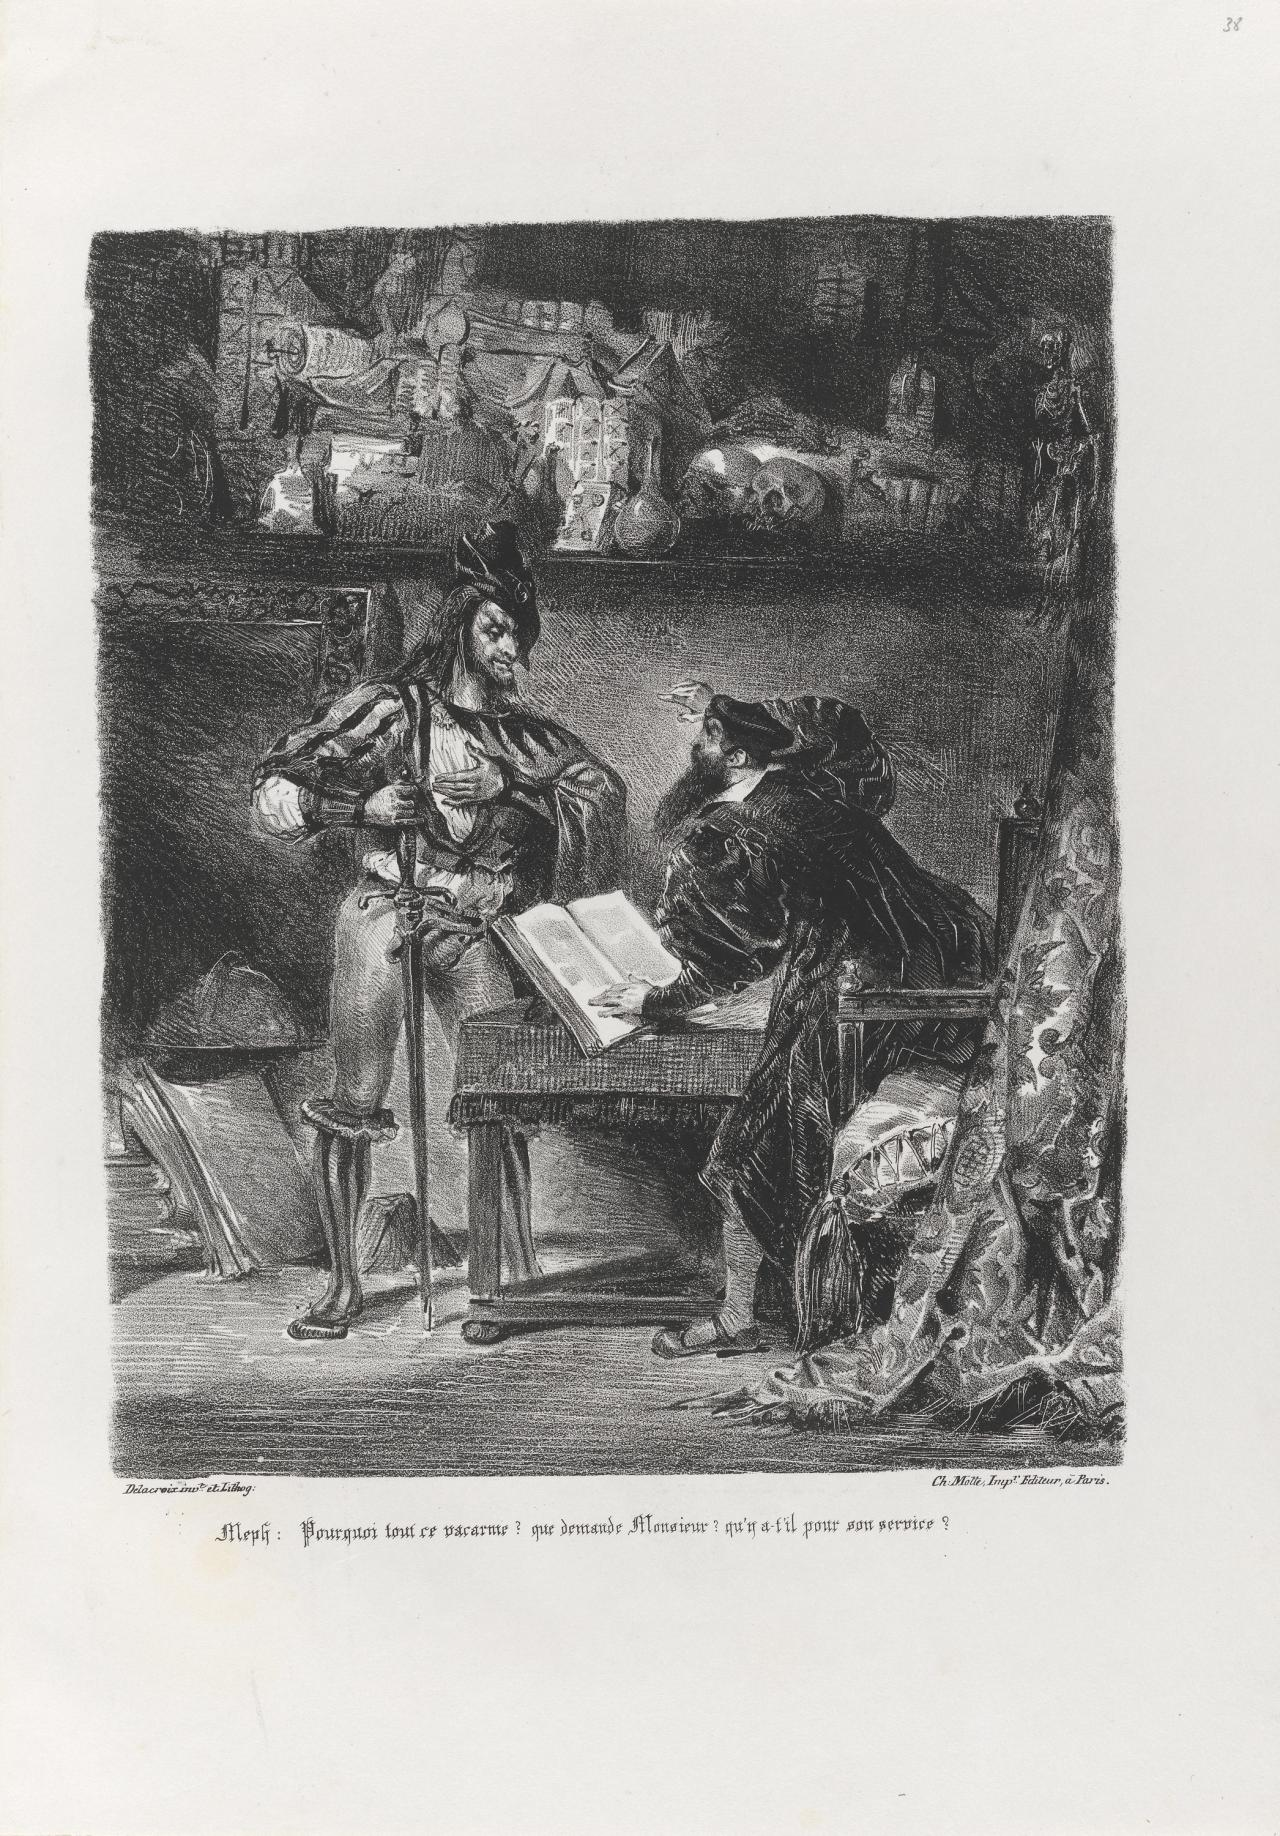 Mephistopheles appearing to Faust